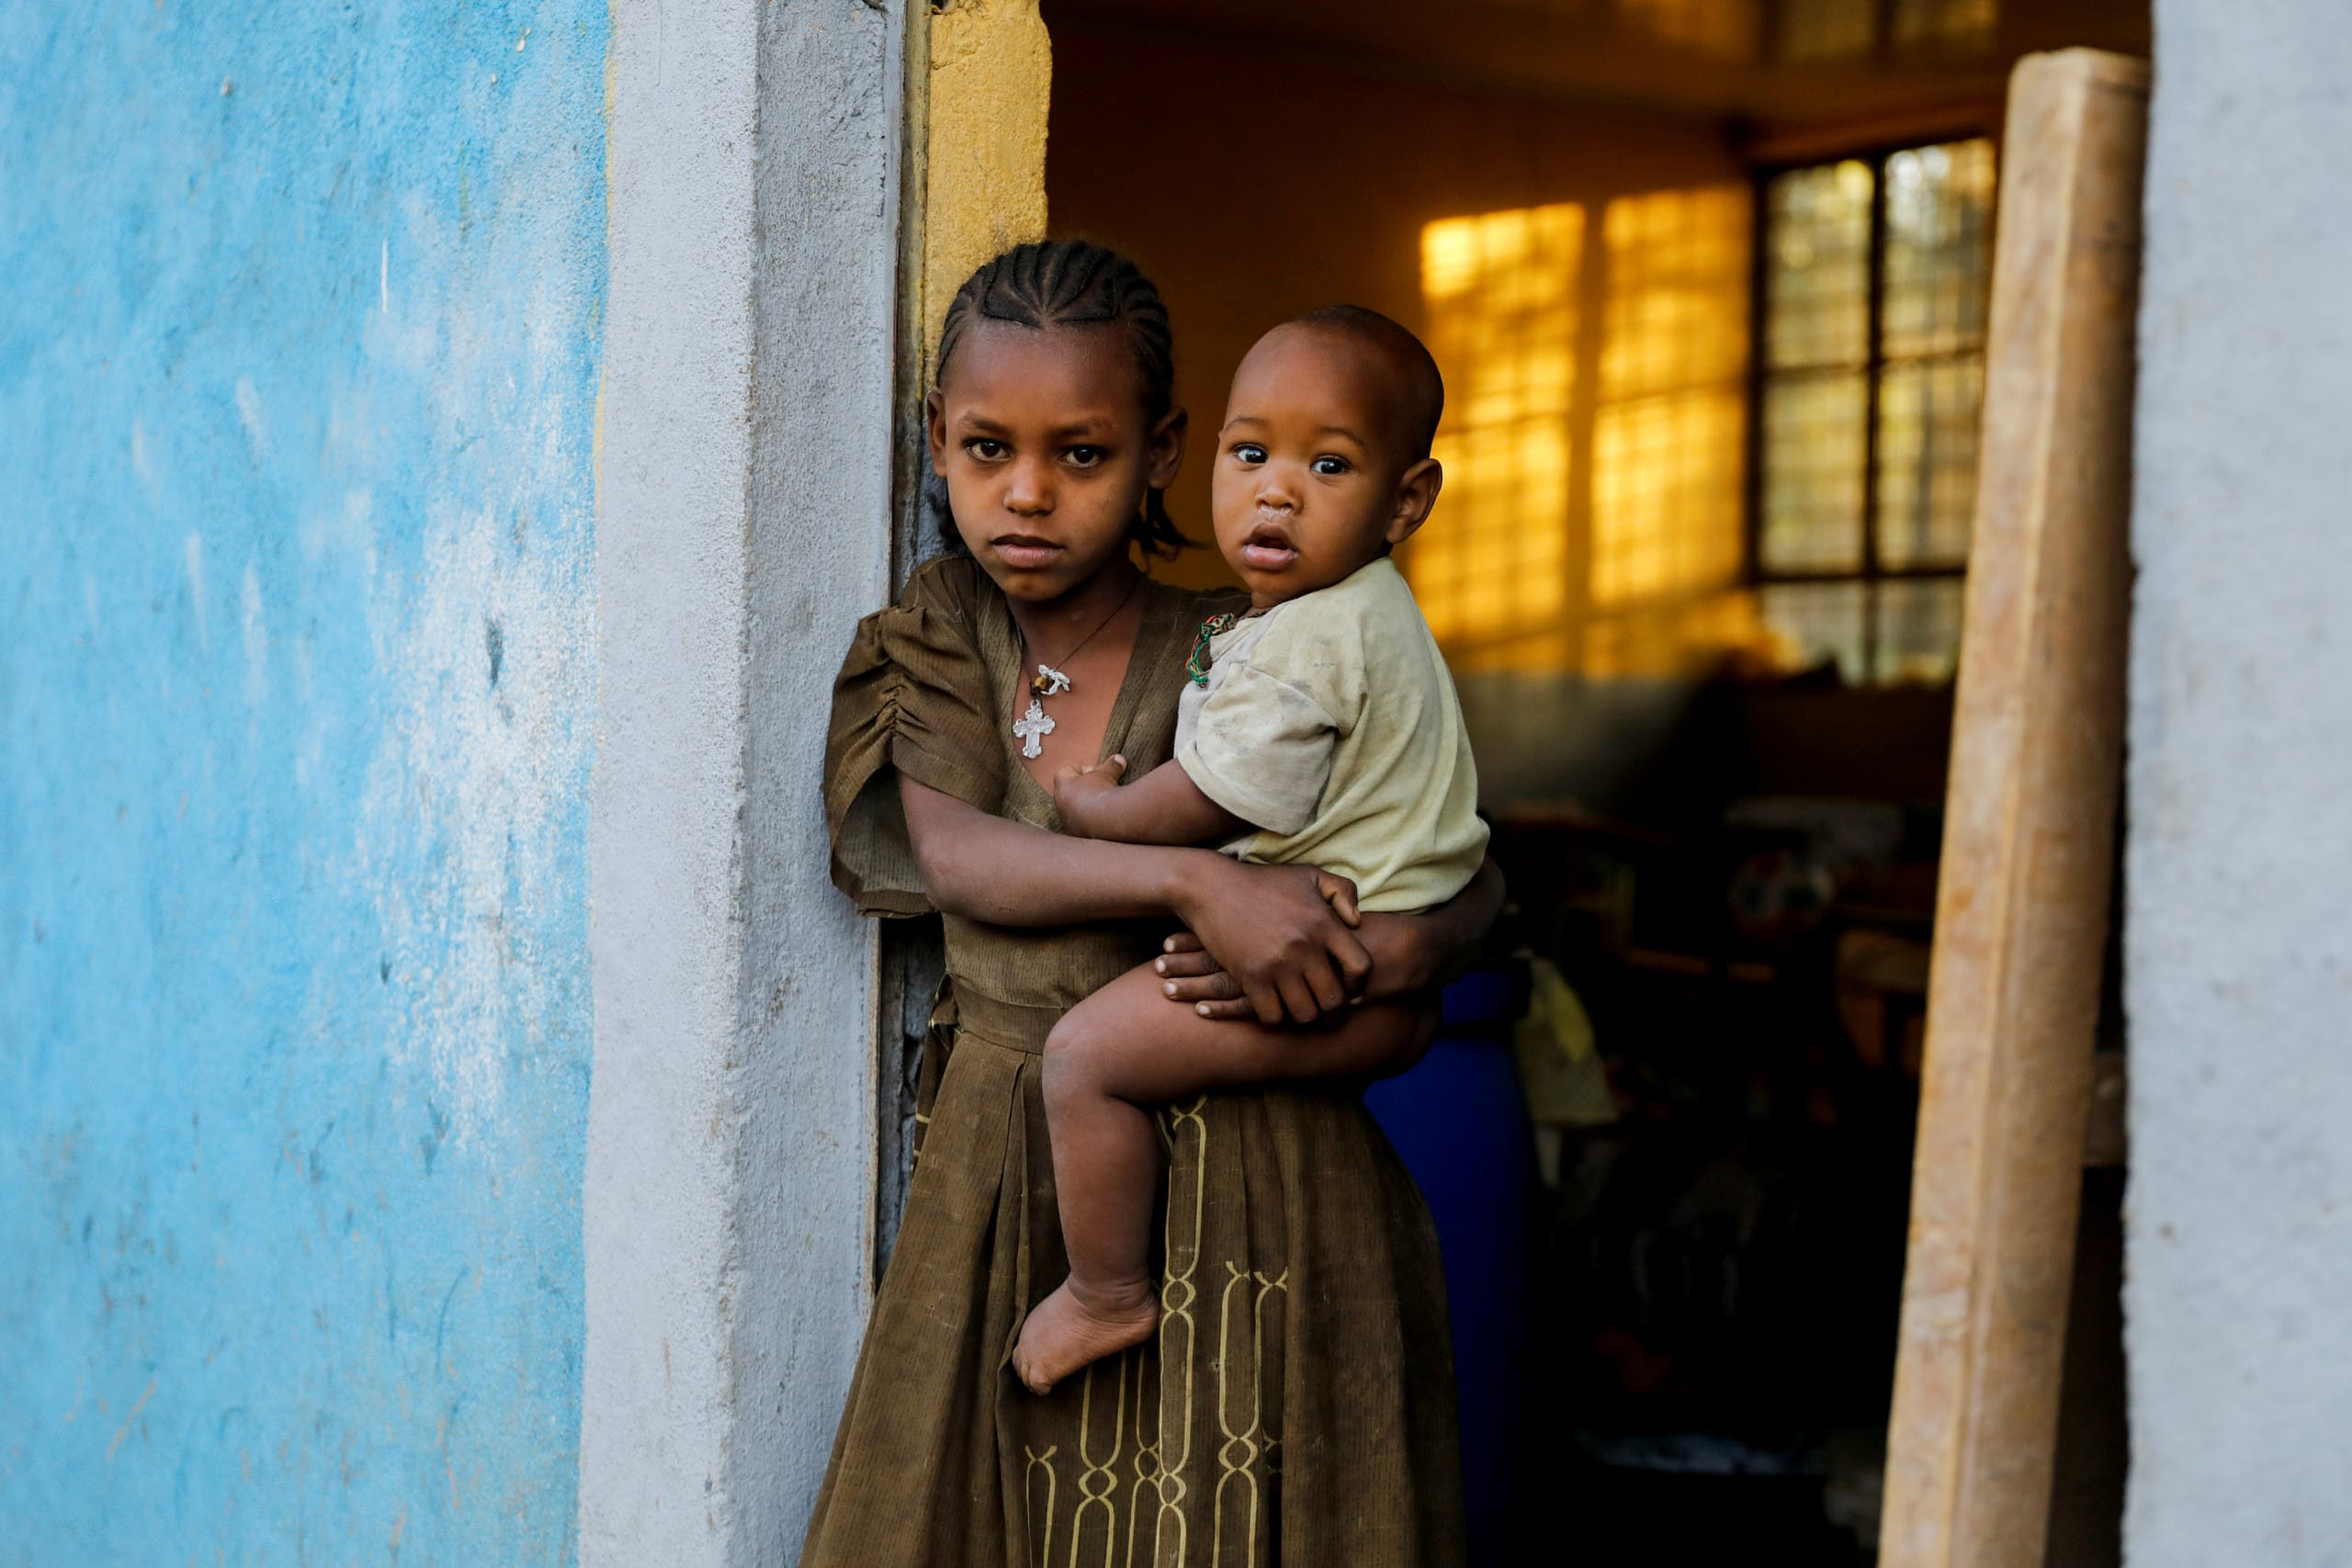 An 11-year-old girl holds her one-year-old brother Barakat at the doorway to a classroom now used as their living space, at the Tsehaye primary school, which was turned into a temporary shelter for people displaced by conflict, in the town of Shire, Tigray region, Ethiopia, March 15, 2021. (File Photo: Reuters)